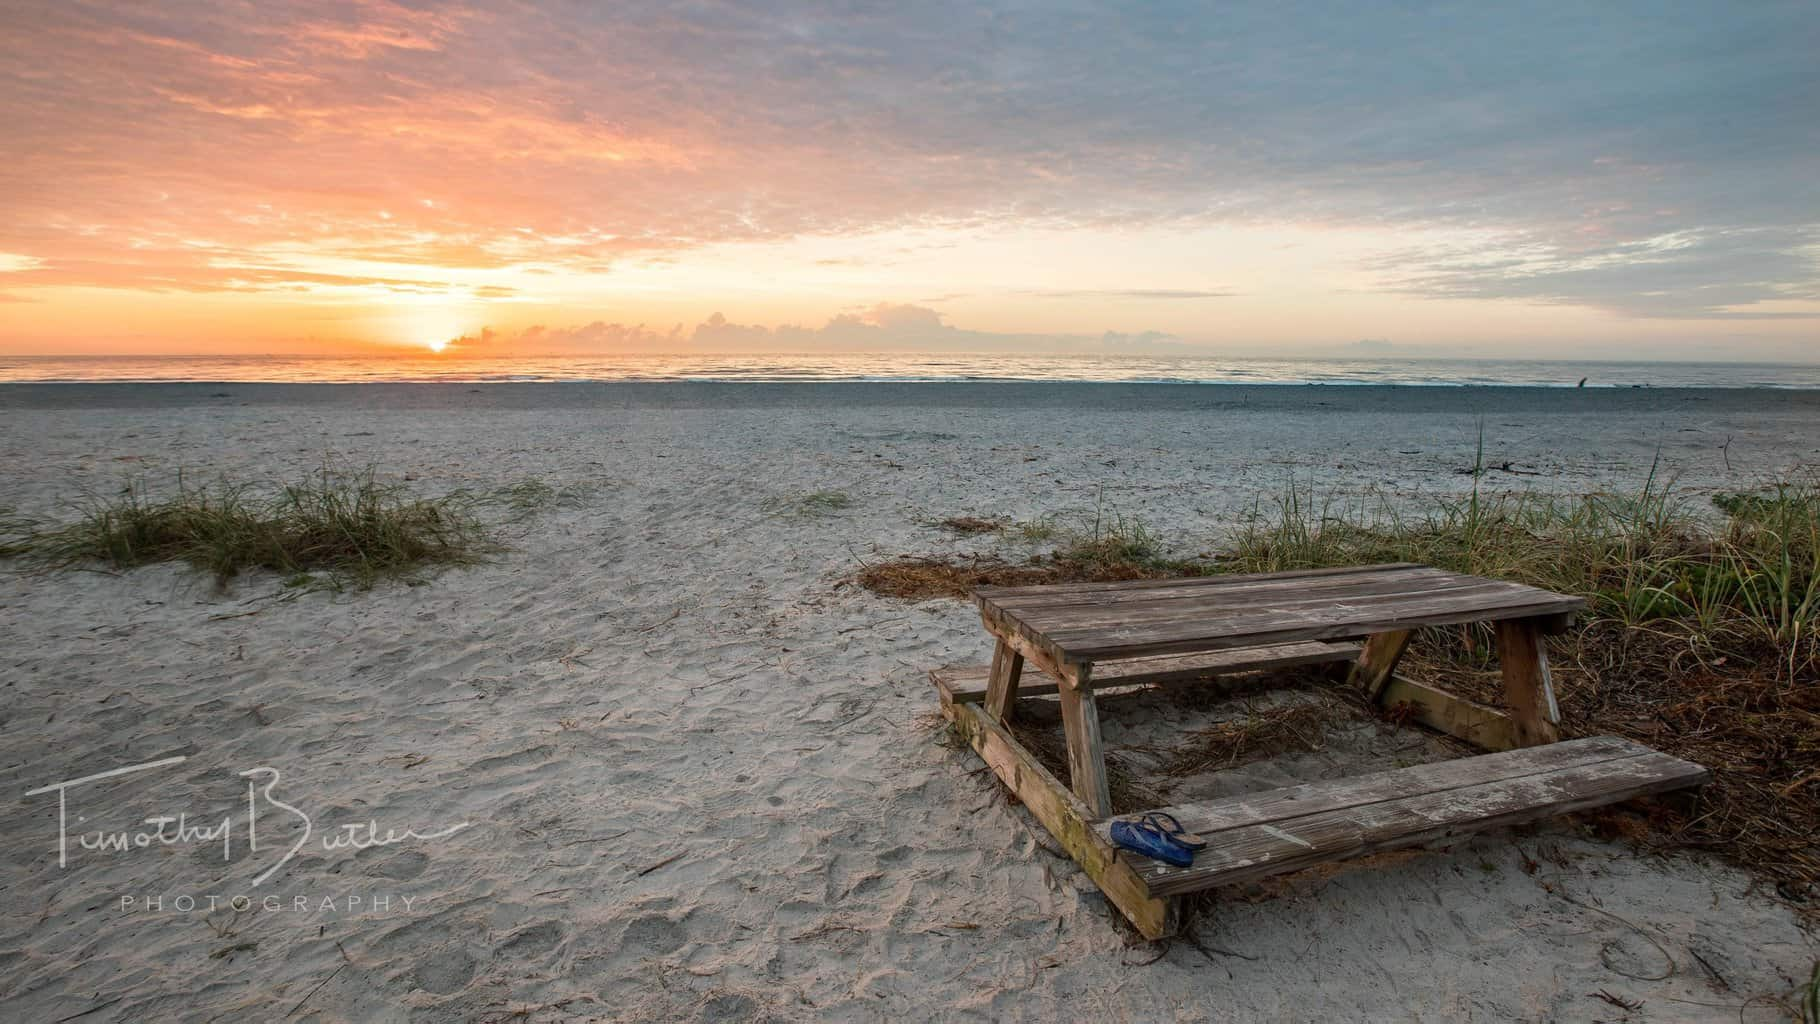 Sunrise over the beach at Cape Canaveral, Florida.